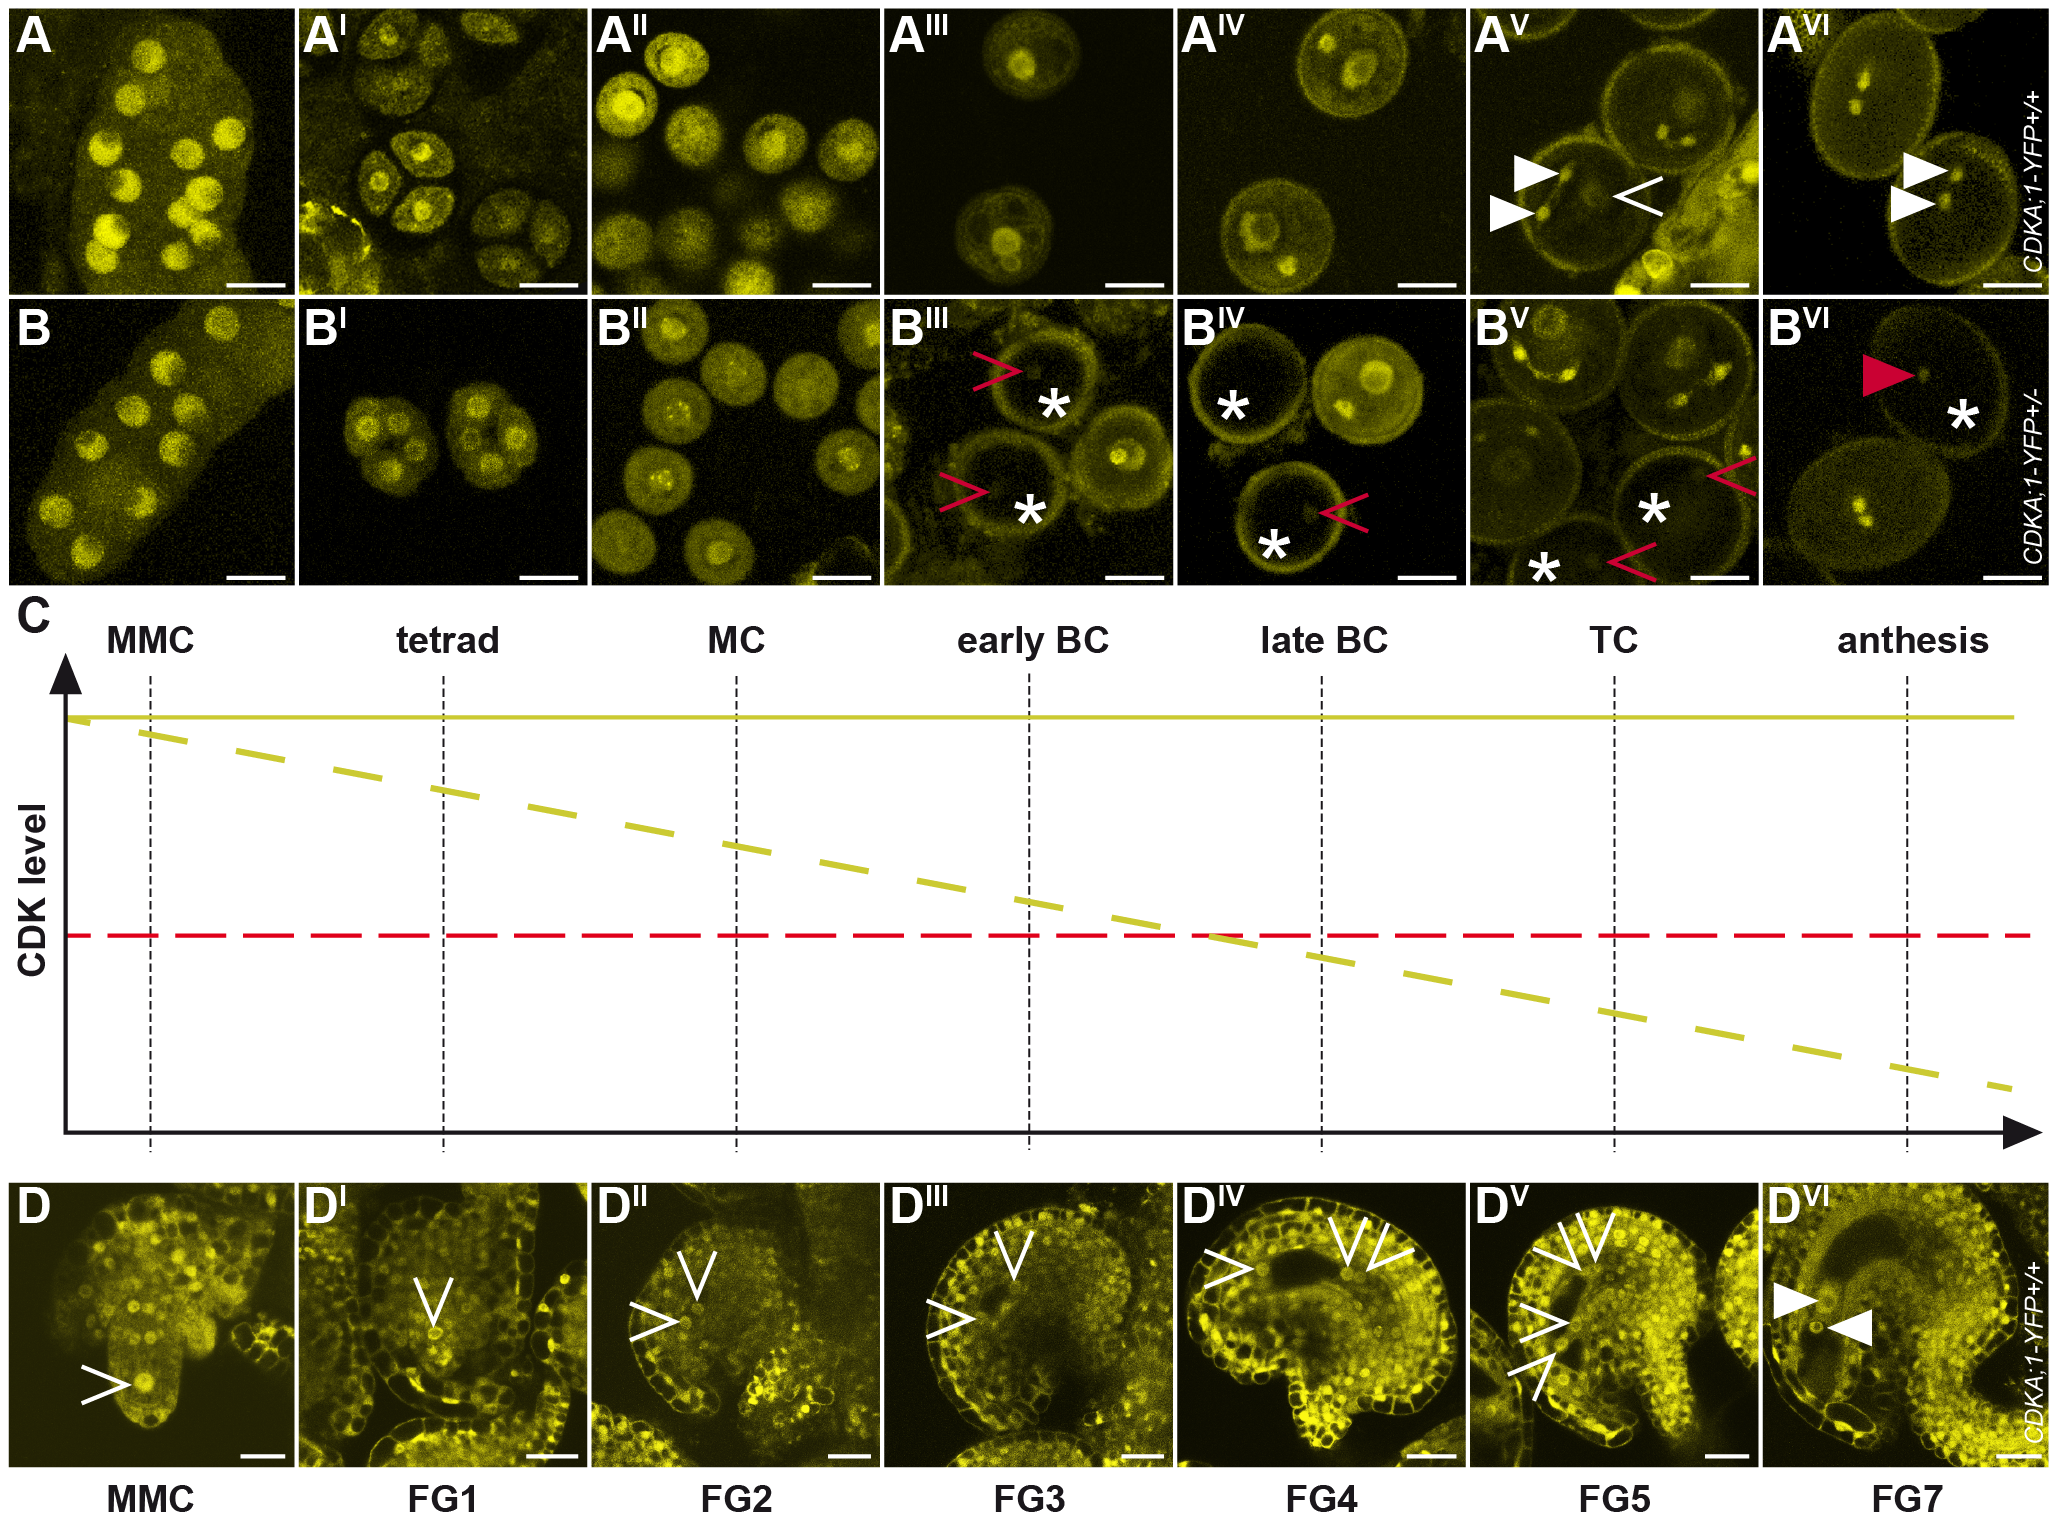 Accumulation and localization of CDKA;1-YFP fusion protein during female and male gametophyte development.